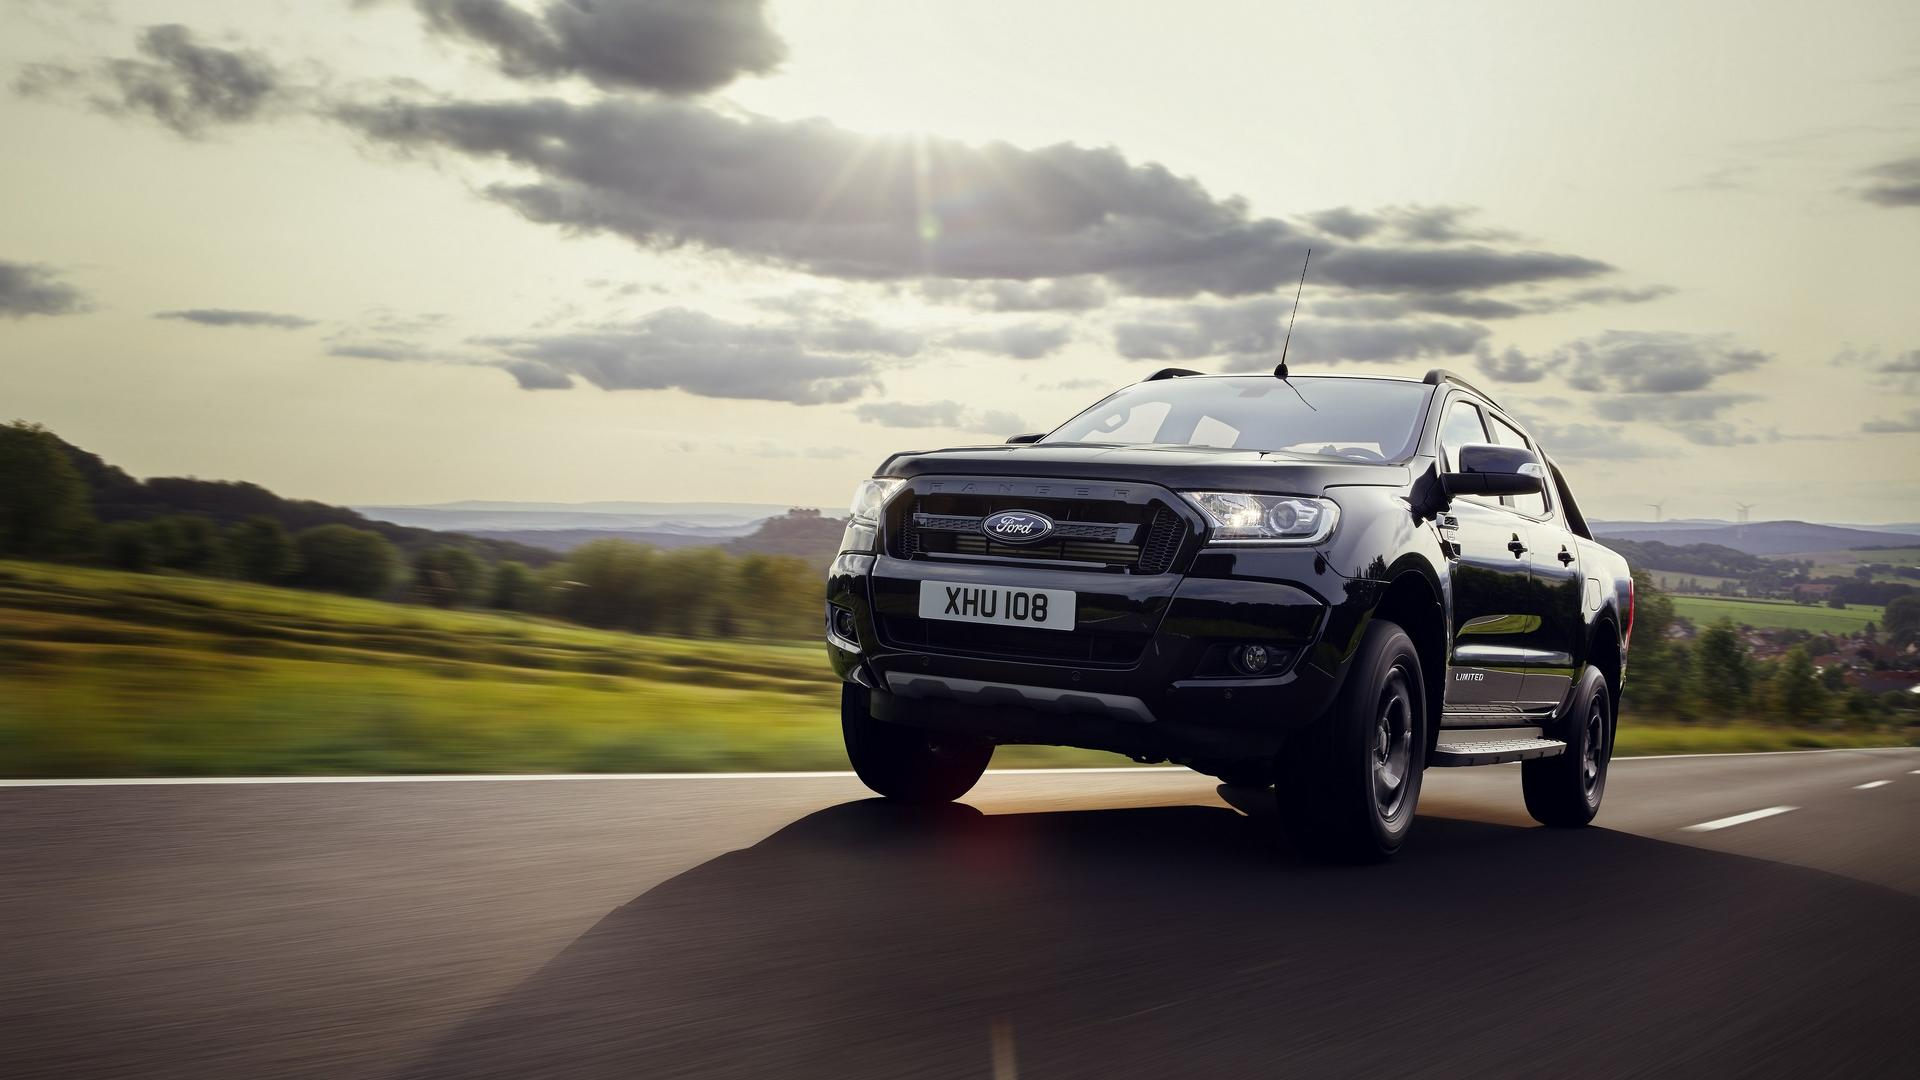 2018 Ford Ranger Black Edition Limited To 2,500 Units - autoevolution